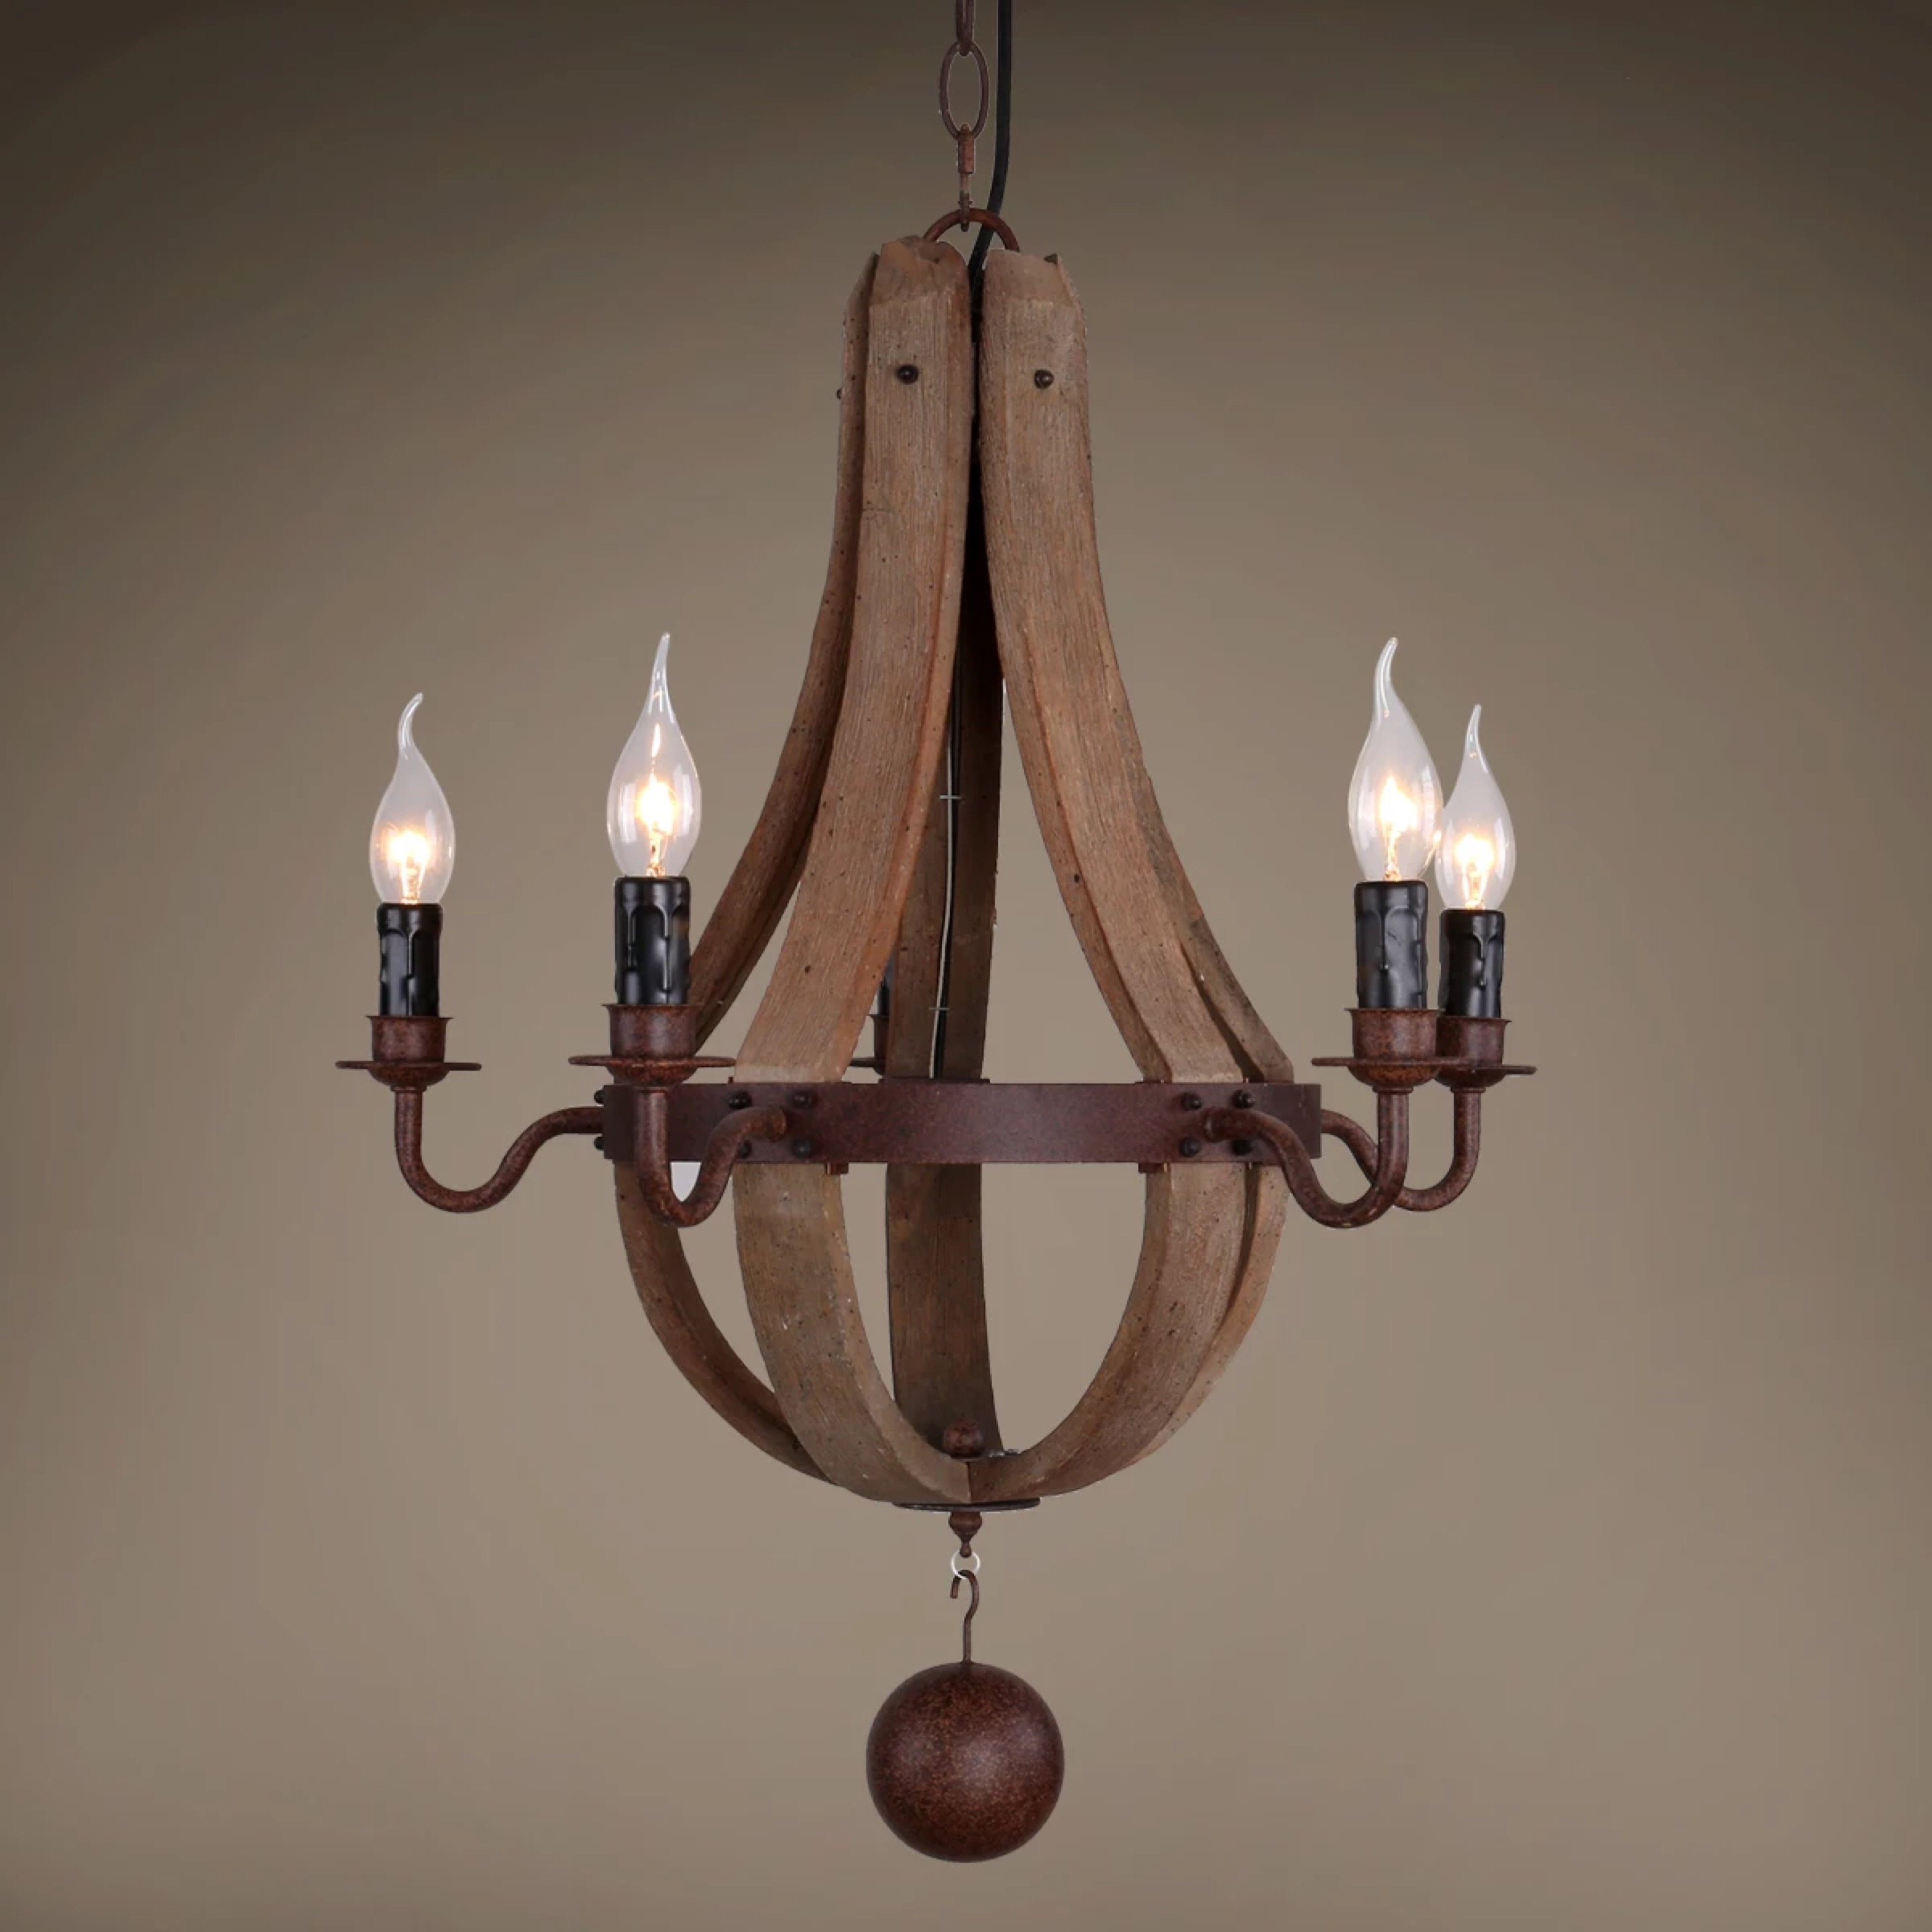 style epistol chandeliers vintage info deco sale for chandelier antique french art